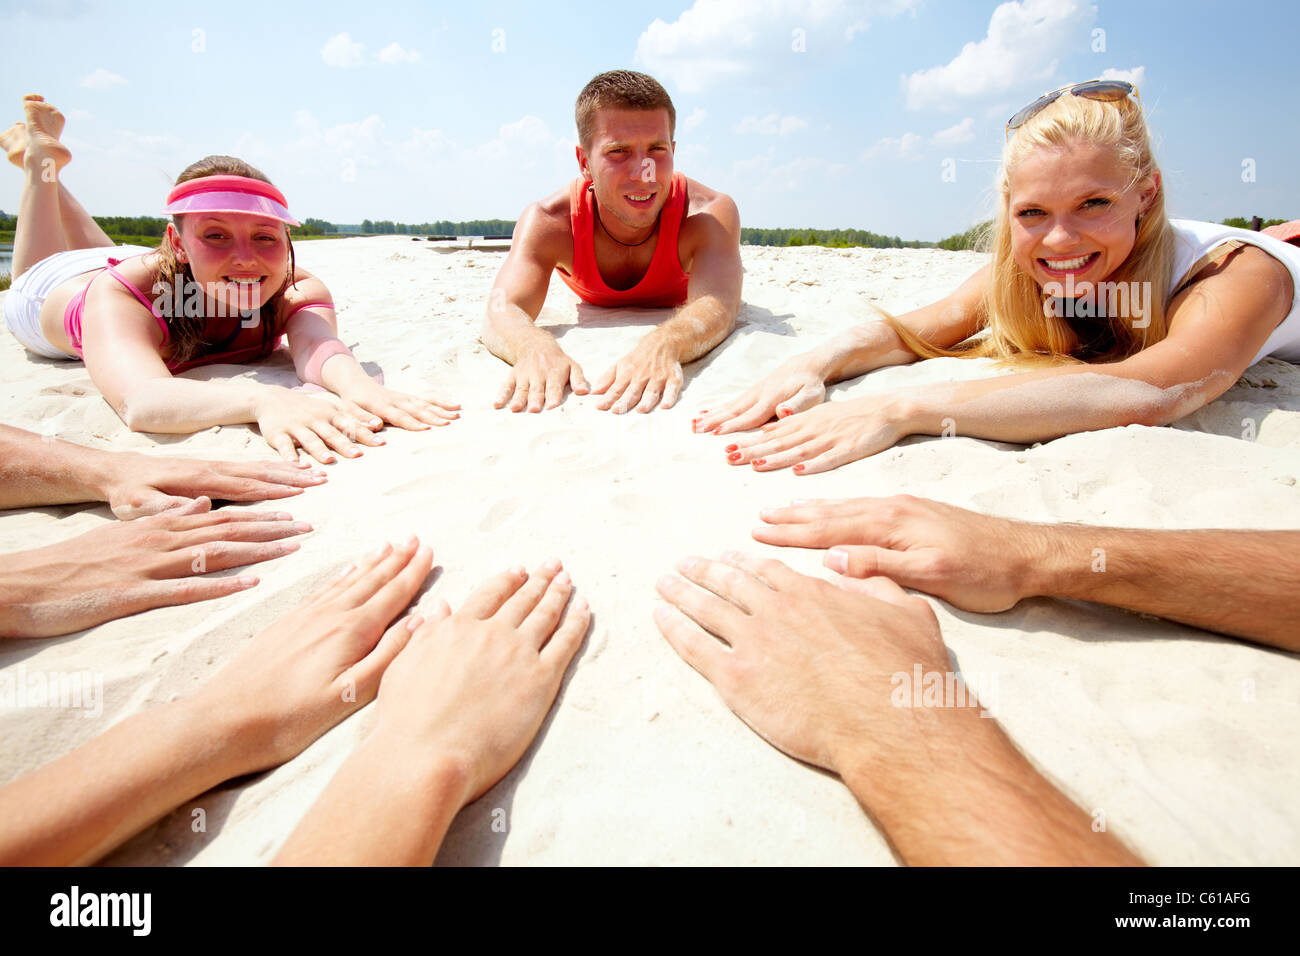 Image of several teens lying on beach and keeping their hands on sand in the form of circle - Stock Image